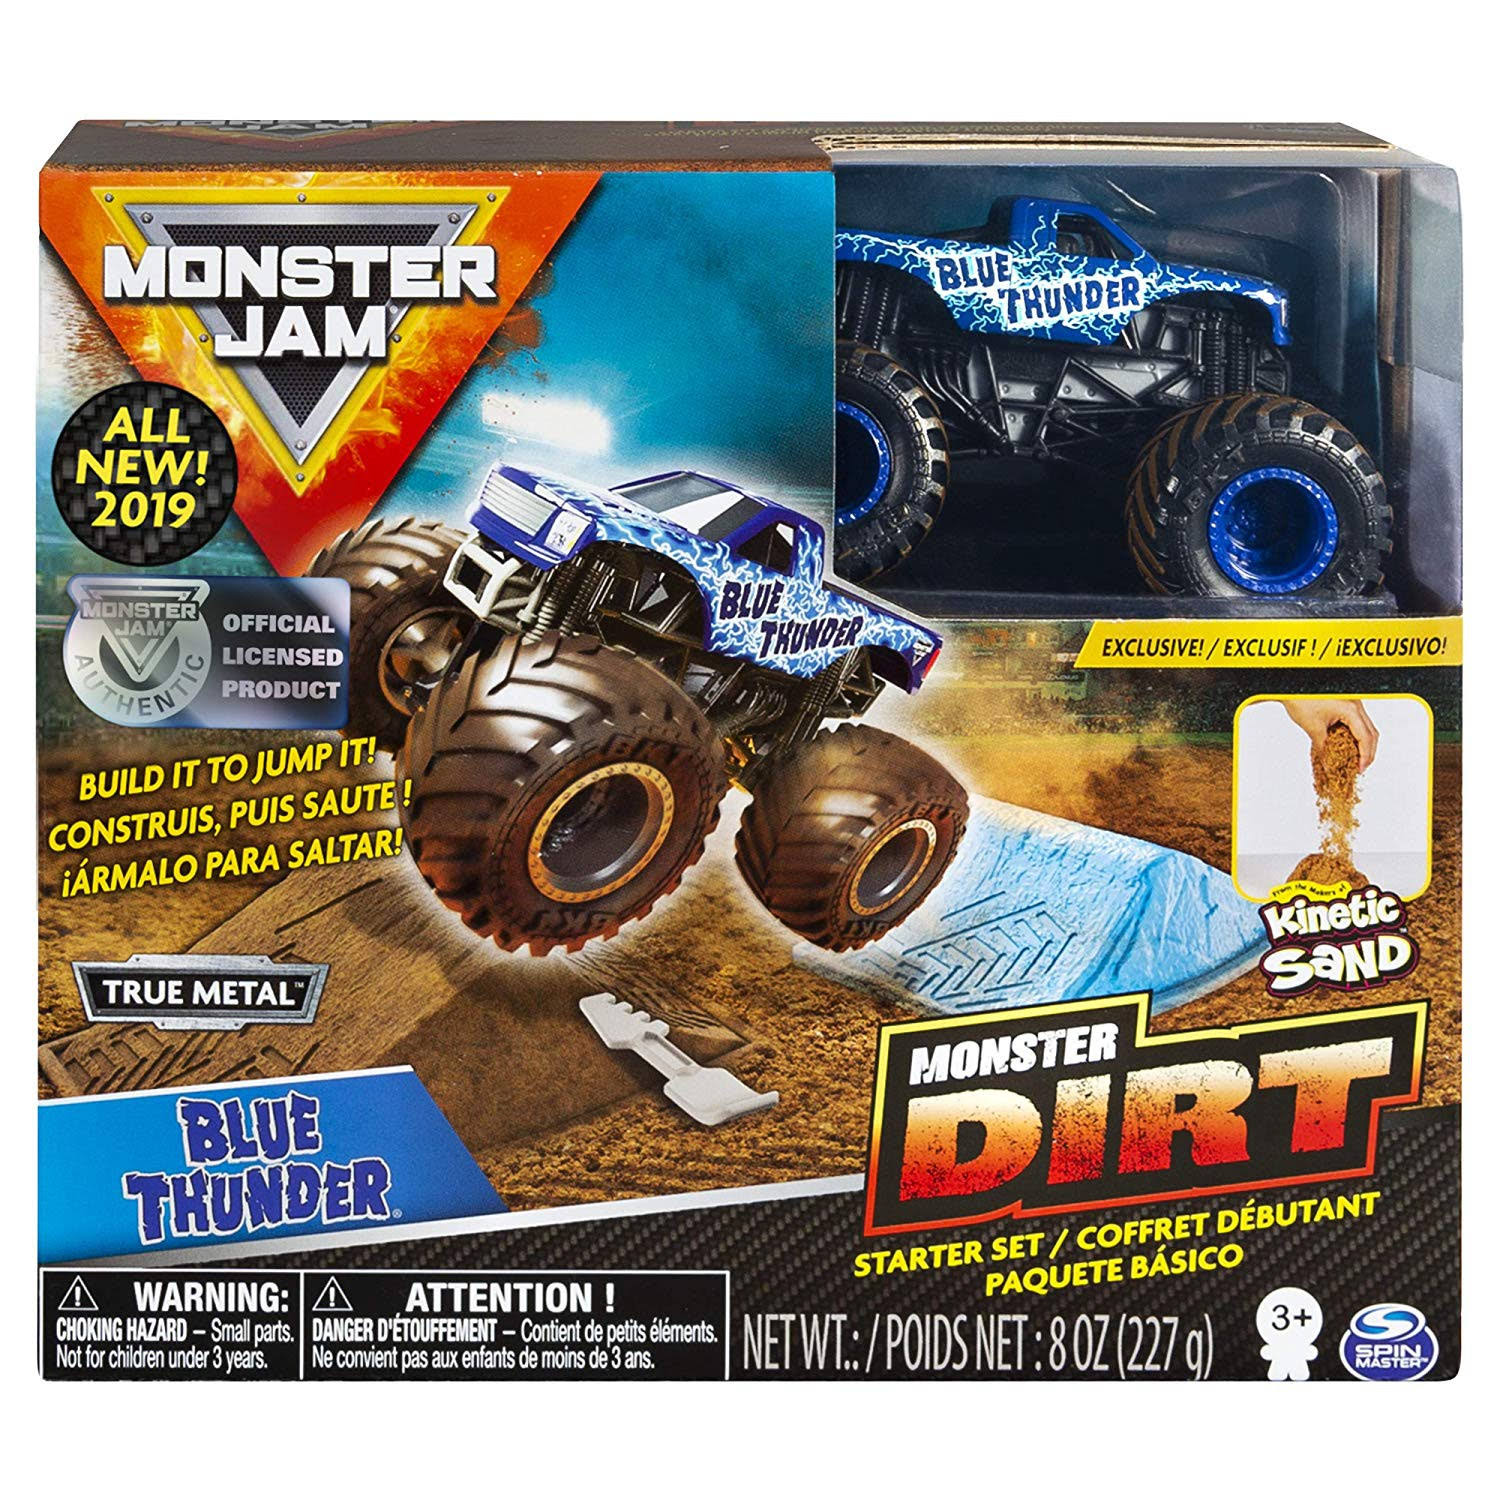 Monster Jam Monster Dirt Starter Set - Blue Thunder, 8oz, 1:64 Scale